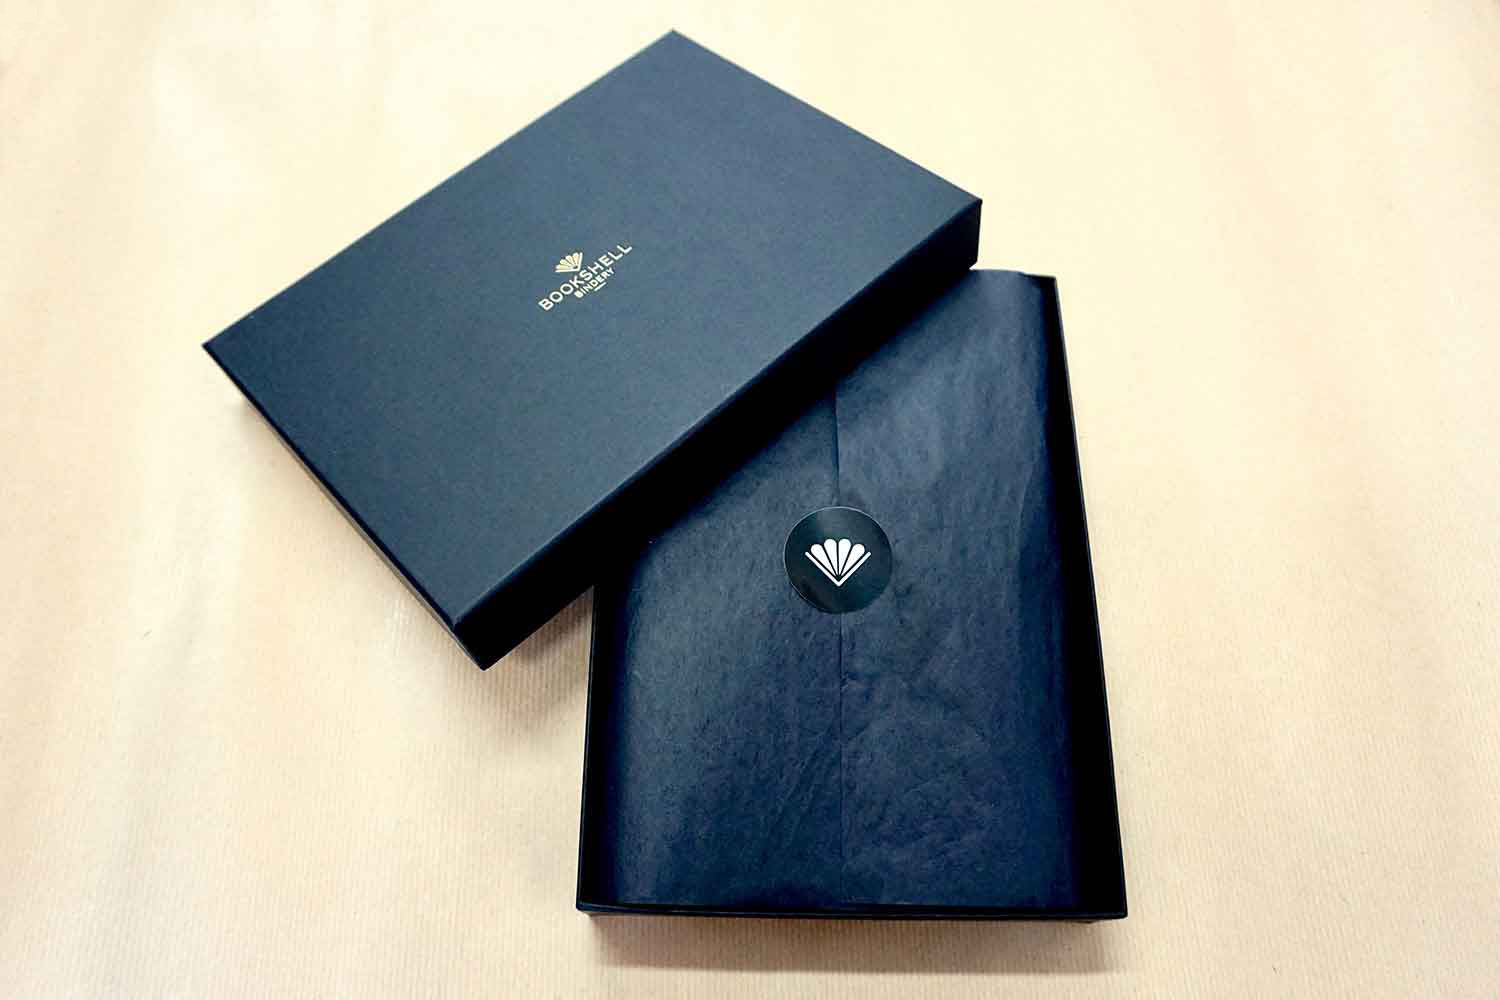 custom leather phone cases from Bookshell arrives ready to gift in beautiful packaging